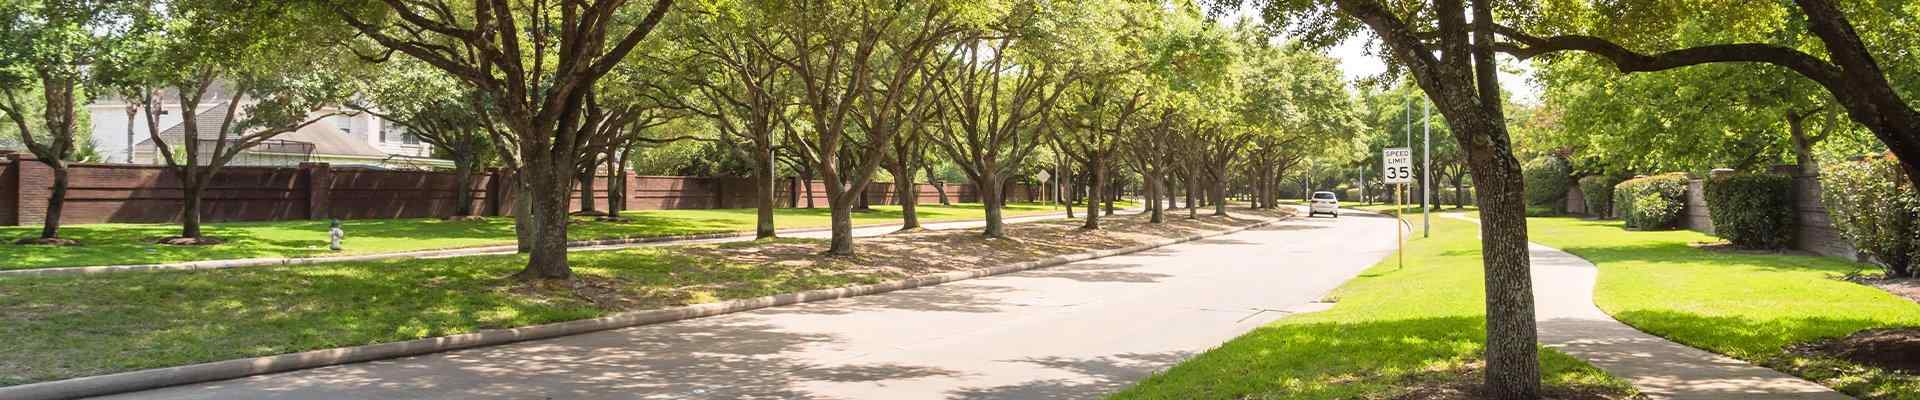 a view of a path in a park in arlington texas